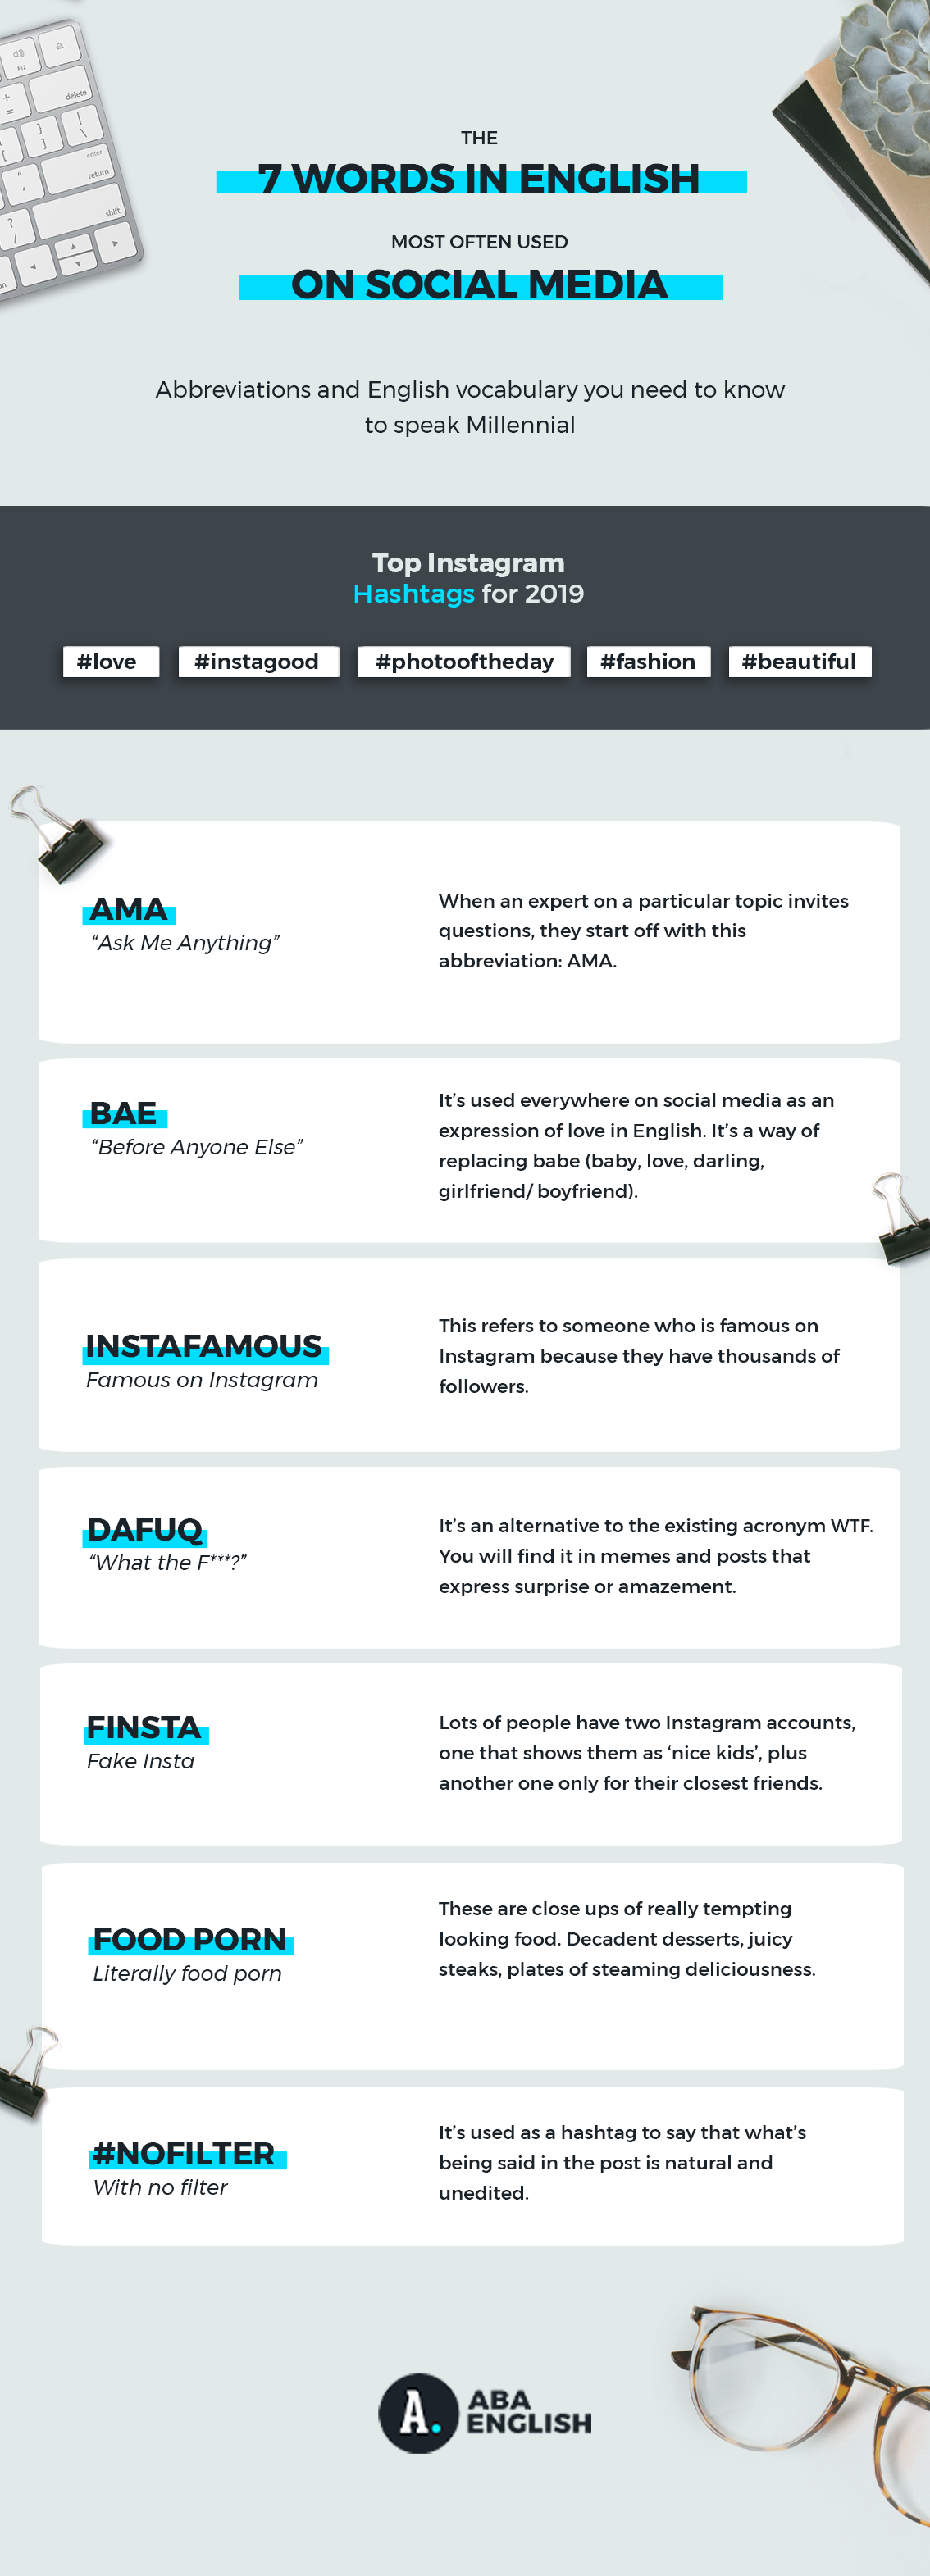 infographic_7_words_social_media_EN